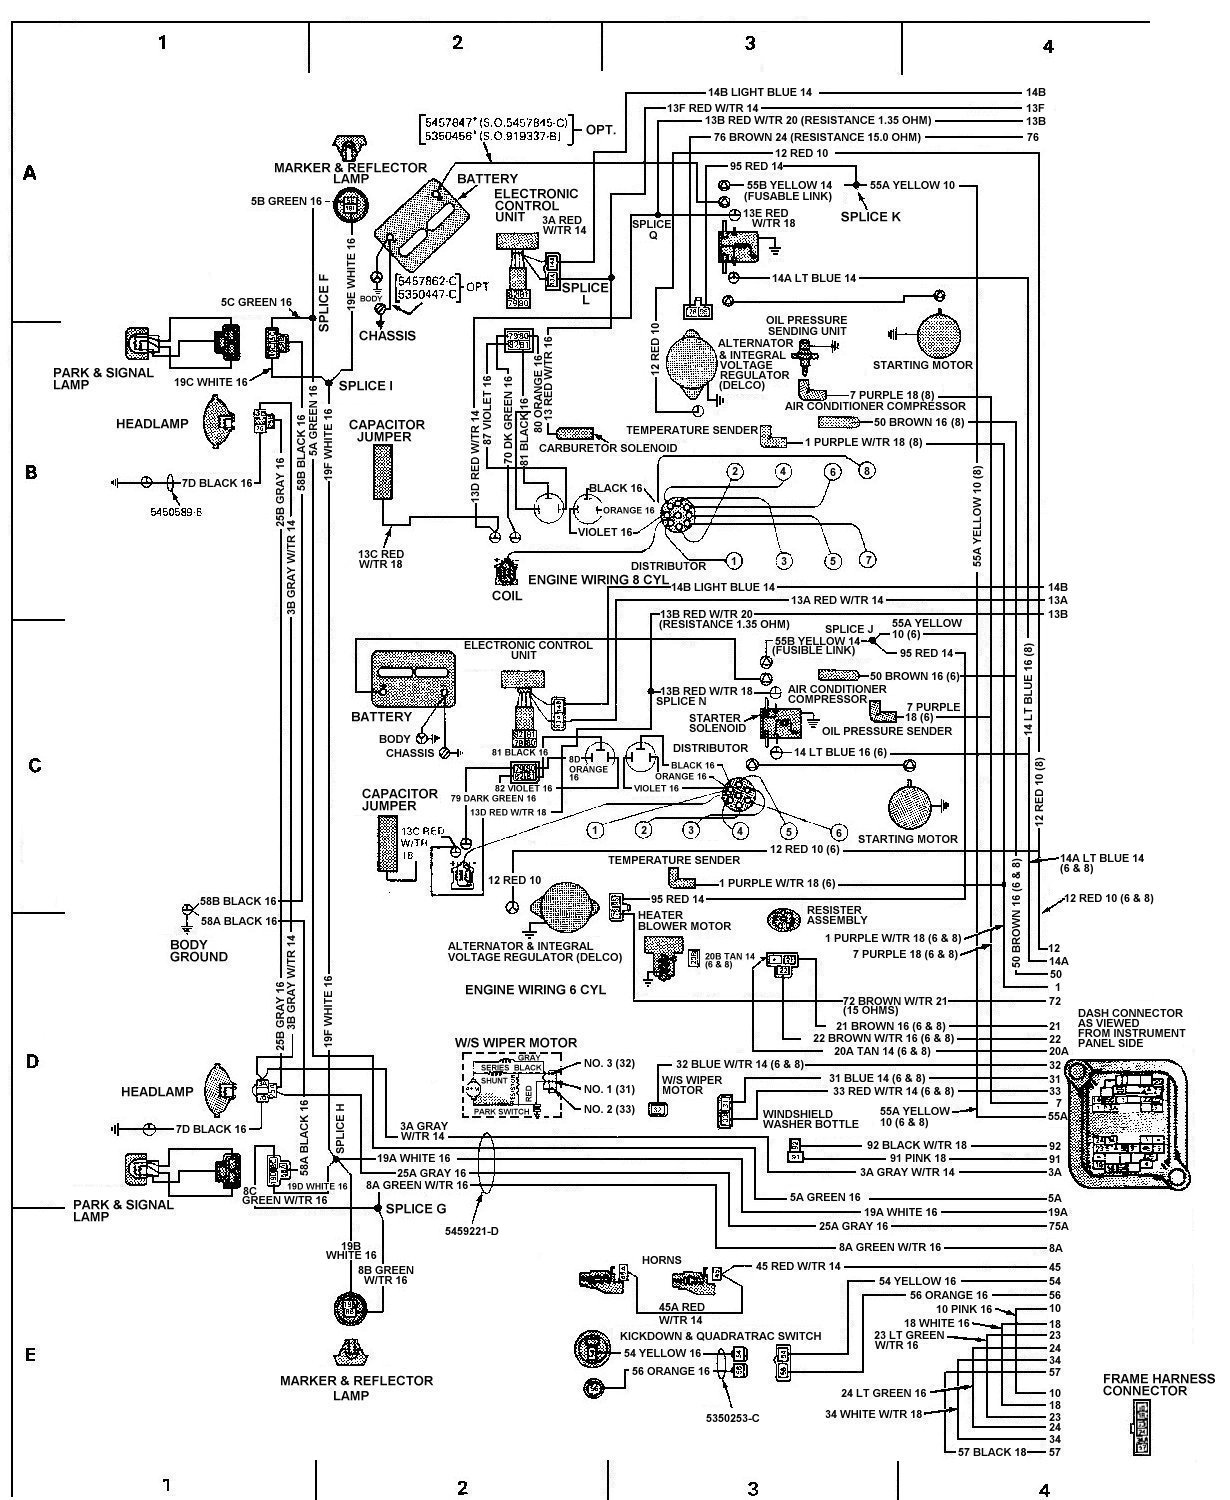 78_FSJ_WiringDiagramPage7 tom 'oljeep' collins fsj wiring page 1990 jeep cherokee ignition wiring diagram at gsmx.co